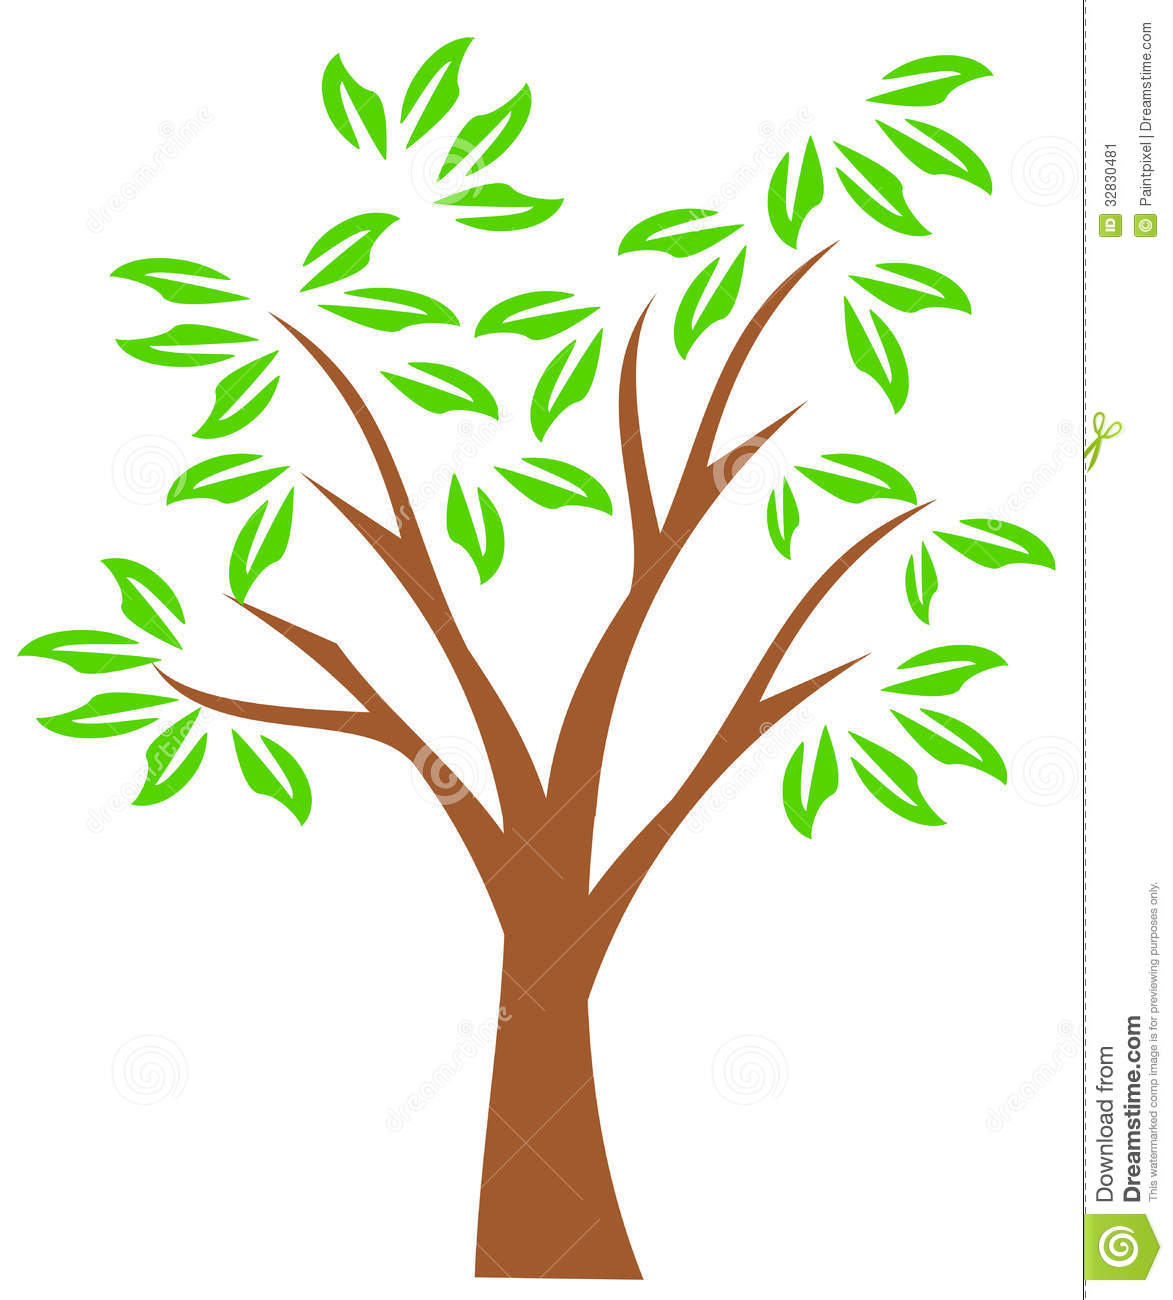 Clipart Tree Without Leaves   Clipart Panda   Free Clipart Images